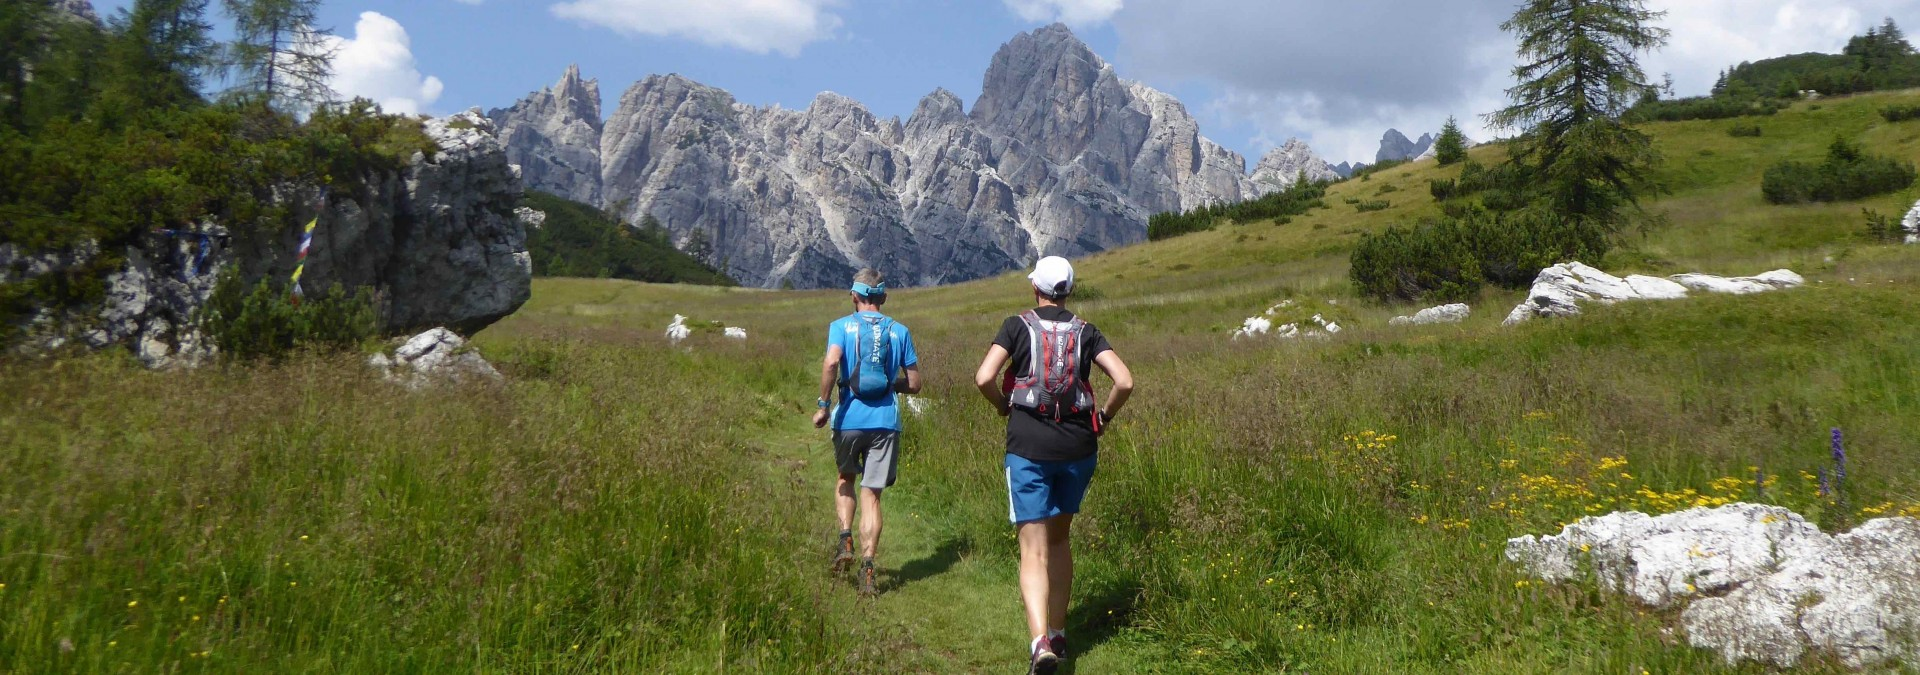 trail run the Dolomites